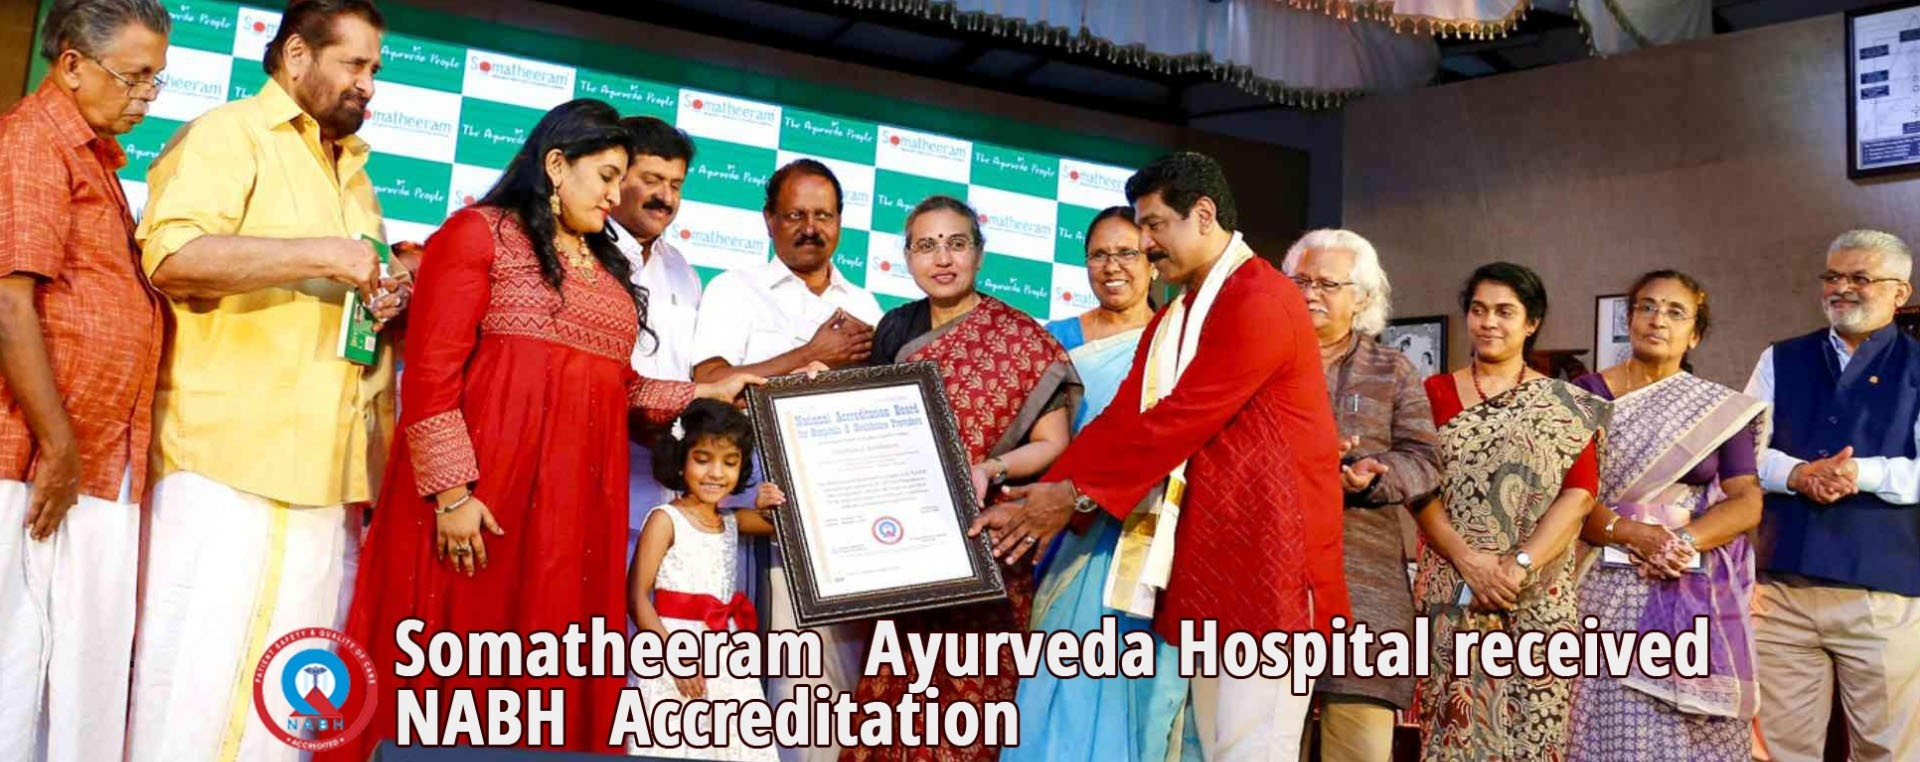 Somatheeram  Ayurveda Hospital received NABH (National Accreditation Board for Hospitals and Health Care Providers) Accreditation